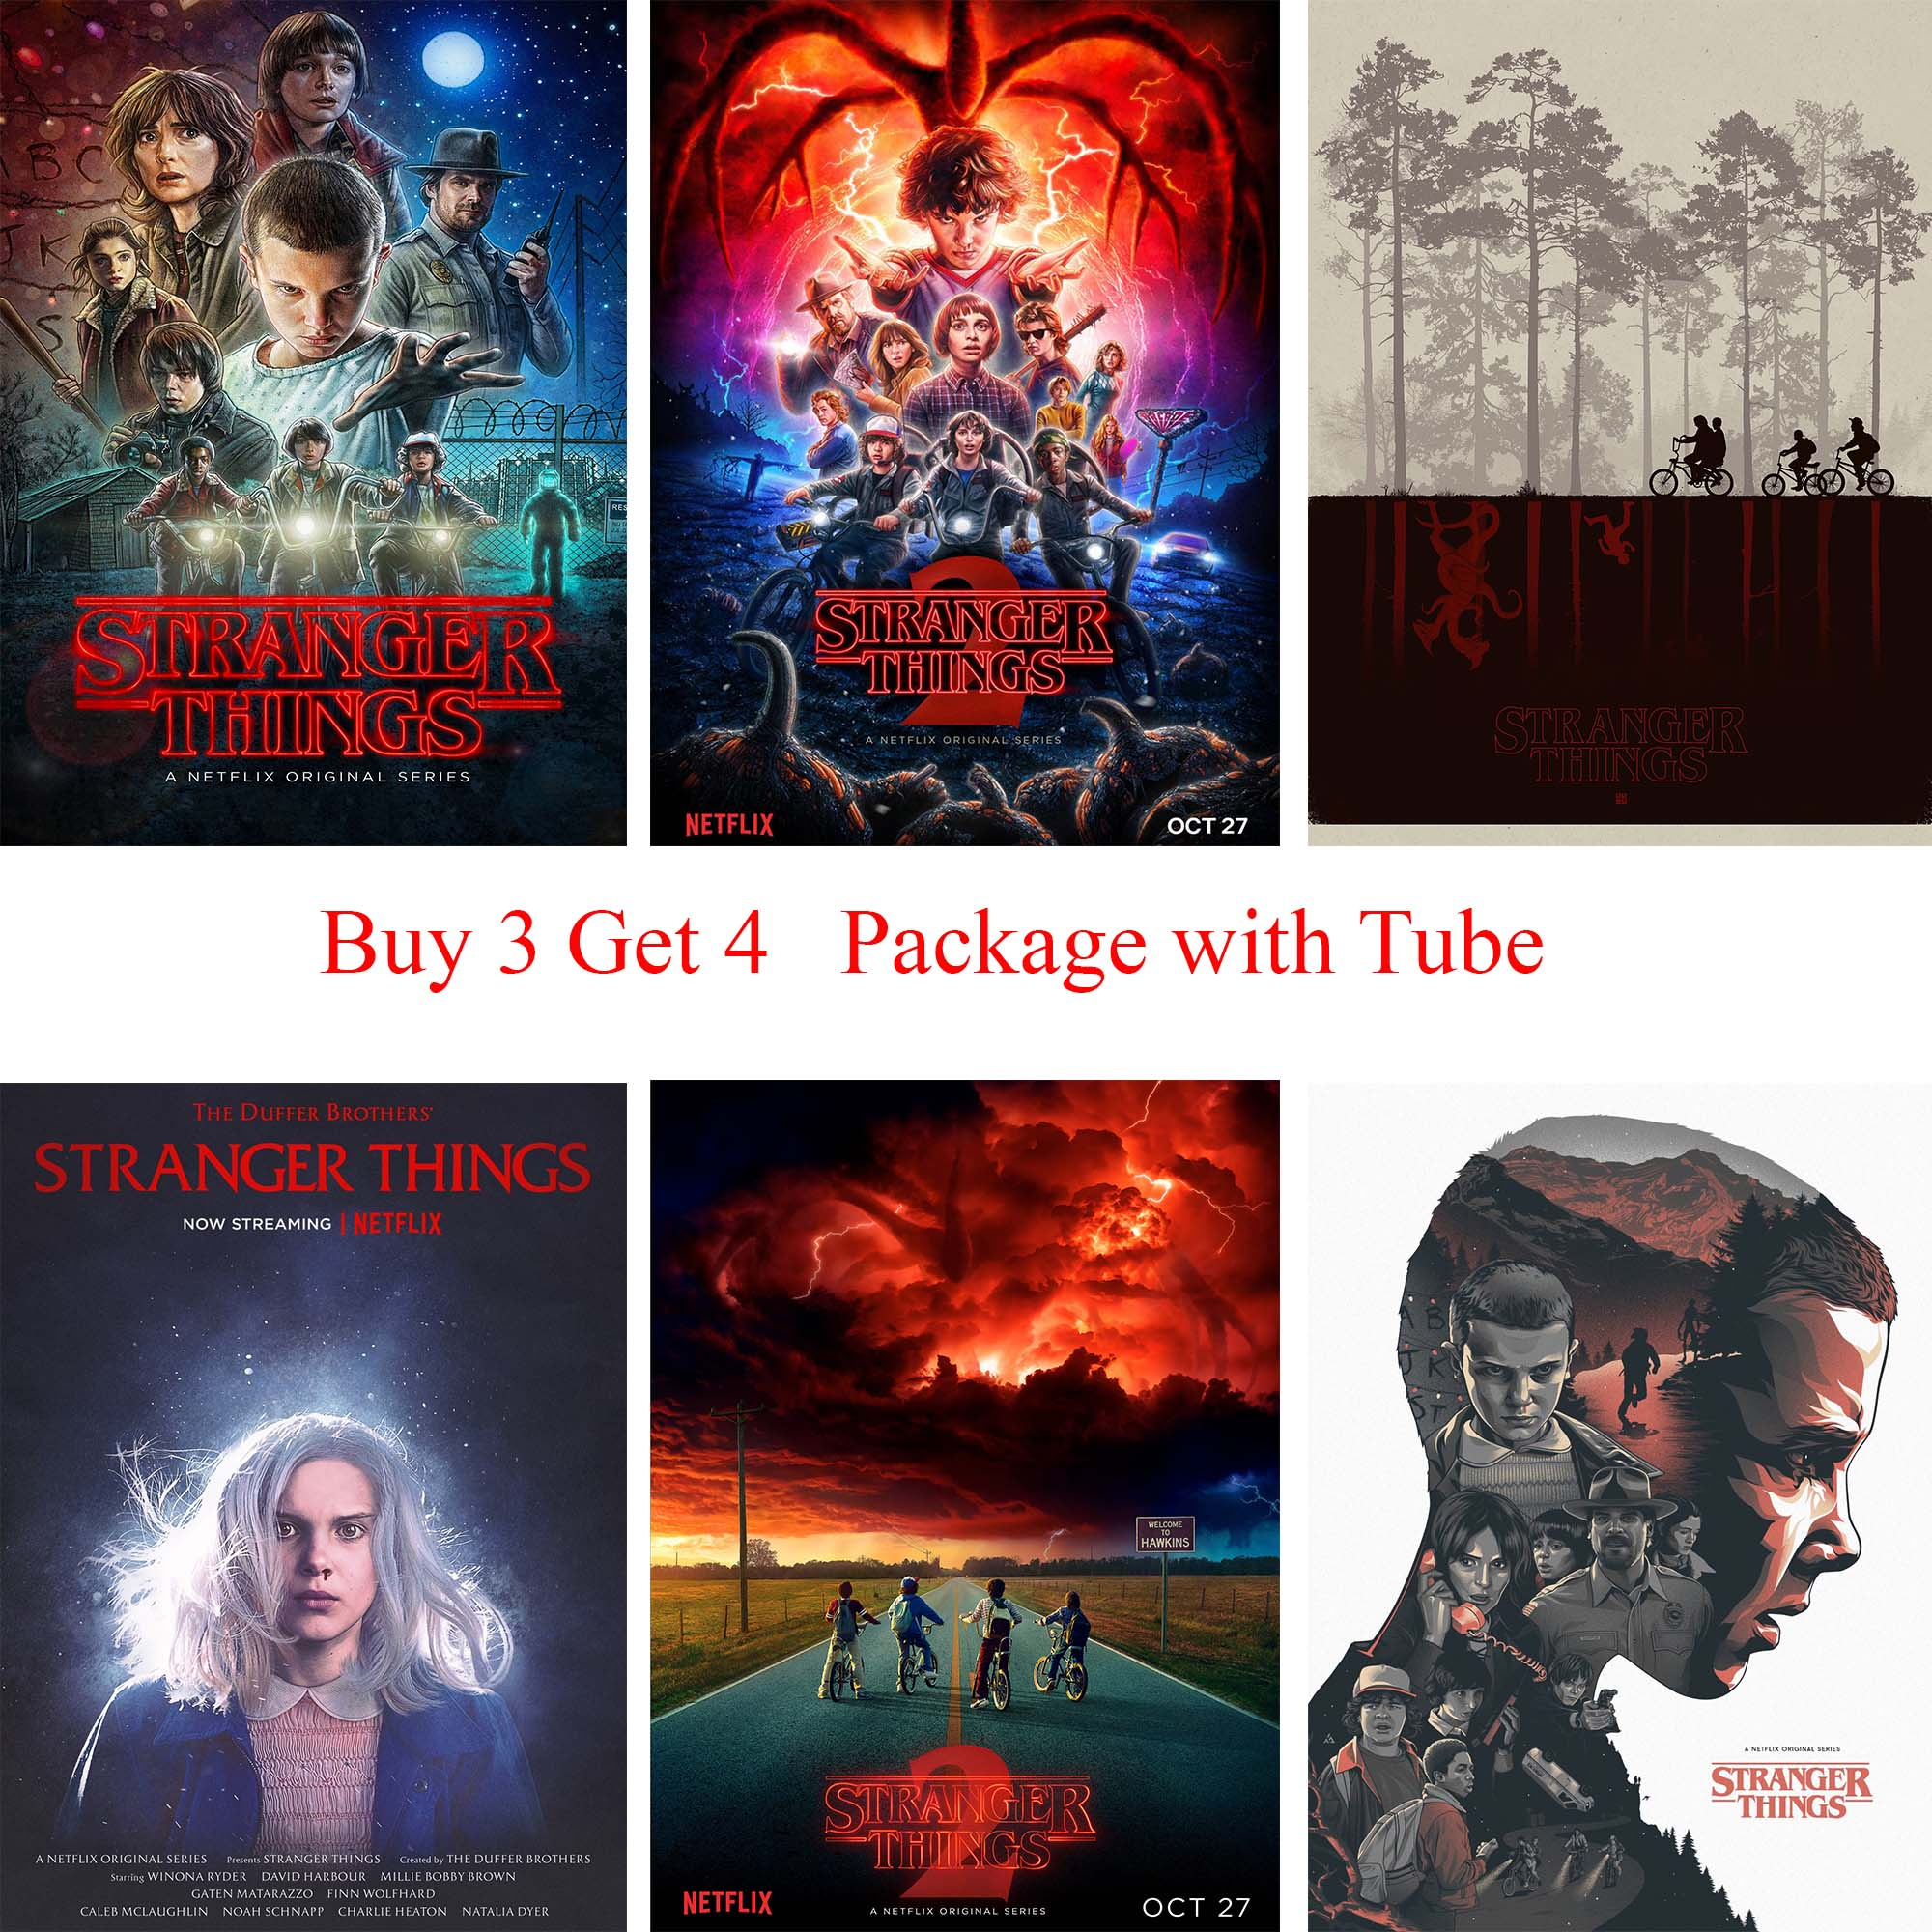 Stranger Things Season 2 Movie Posters Wall Stickers White Coated Paper Prints Home Decoration Home Art Brand(China)